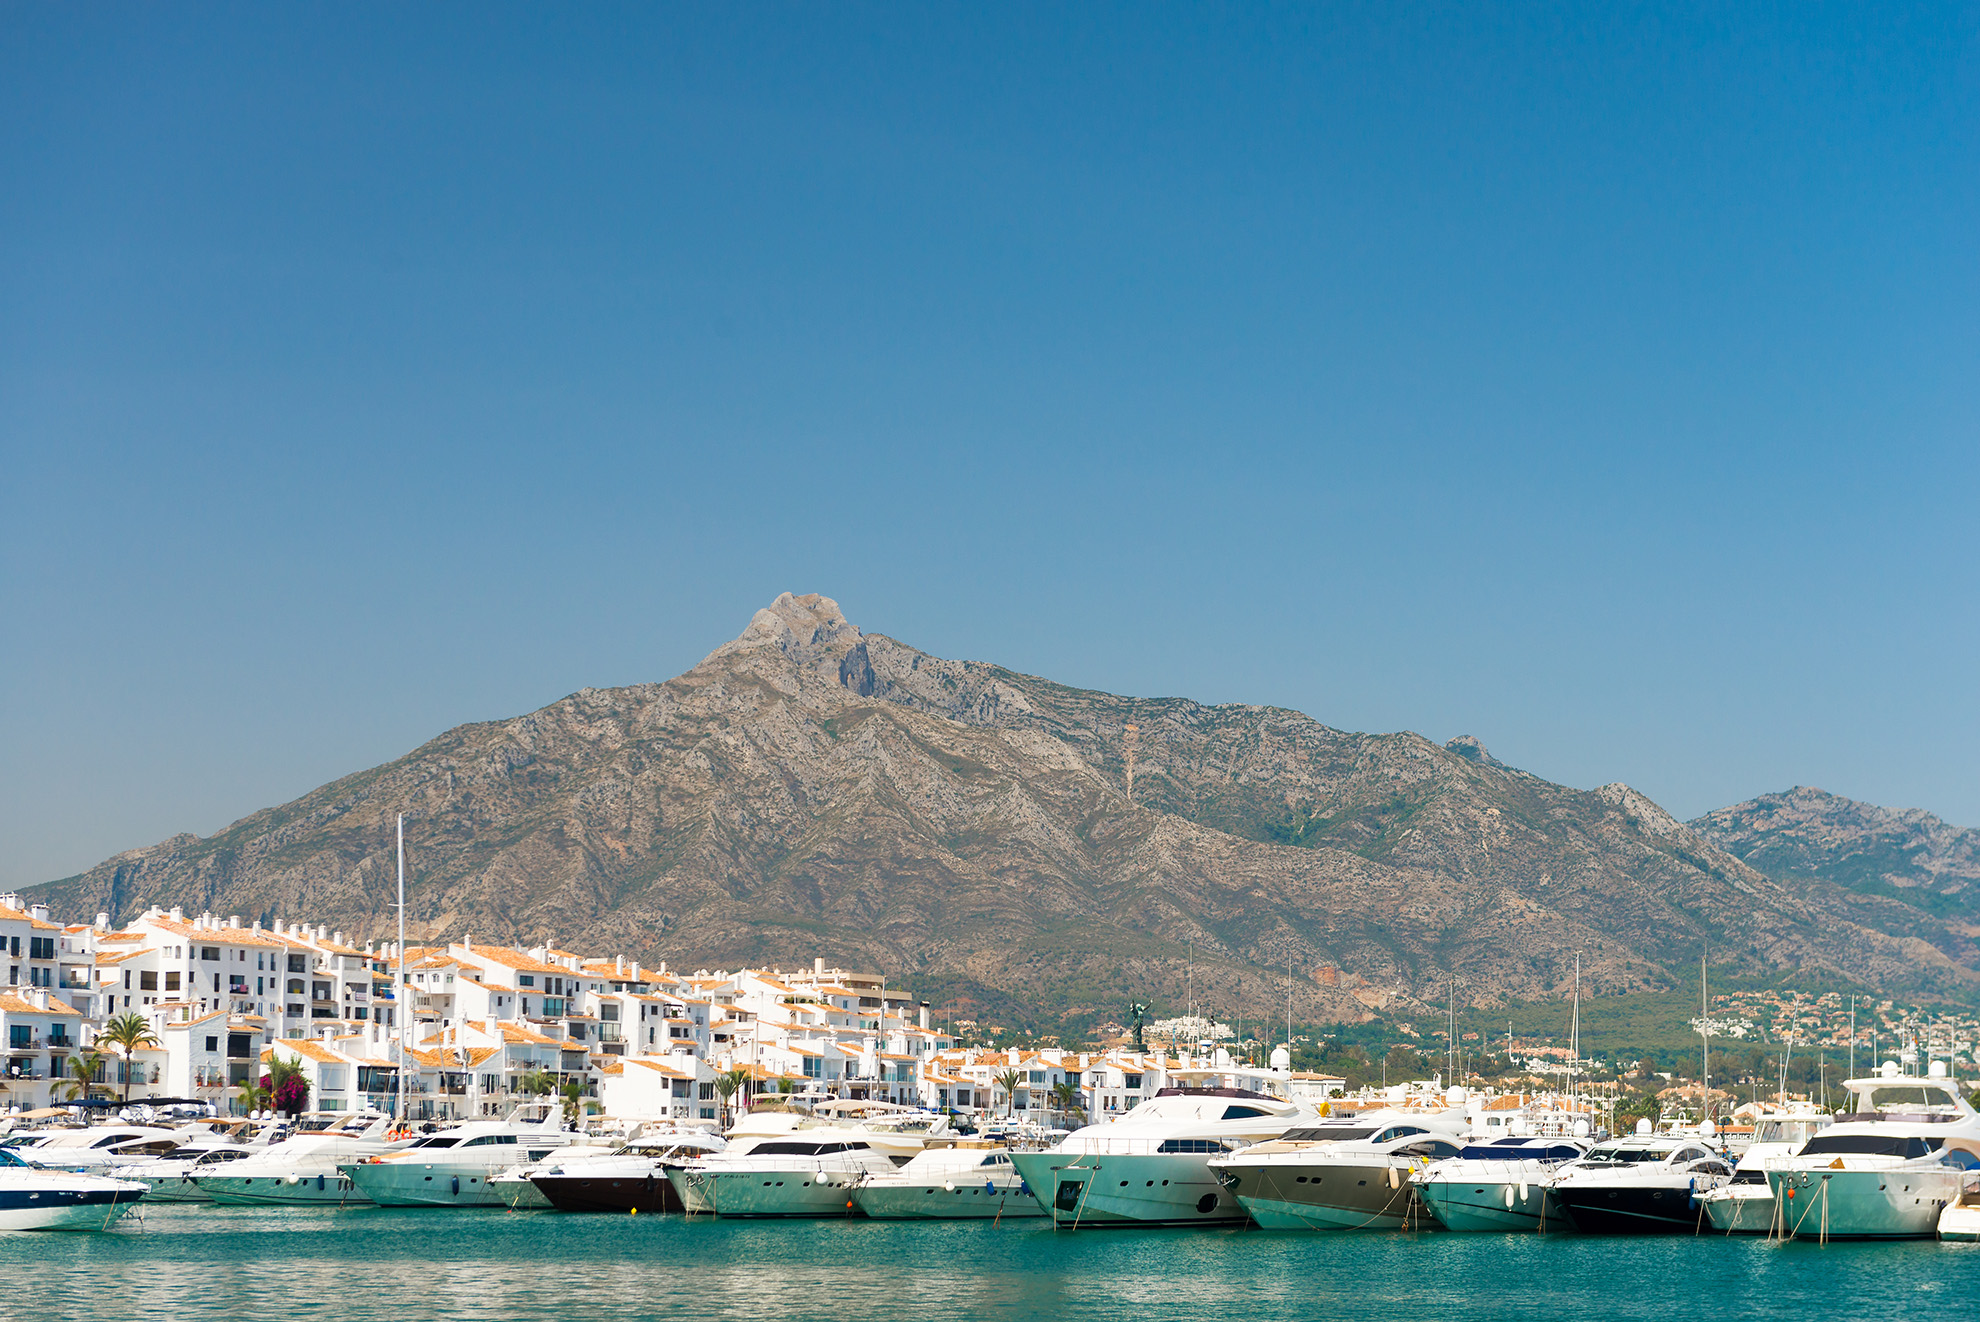 Puerto Banús: more than just a glamourous marina